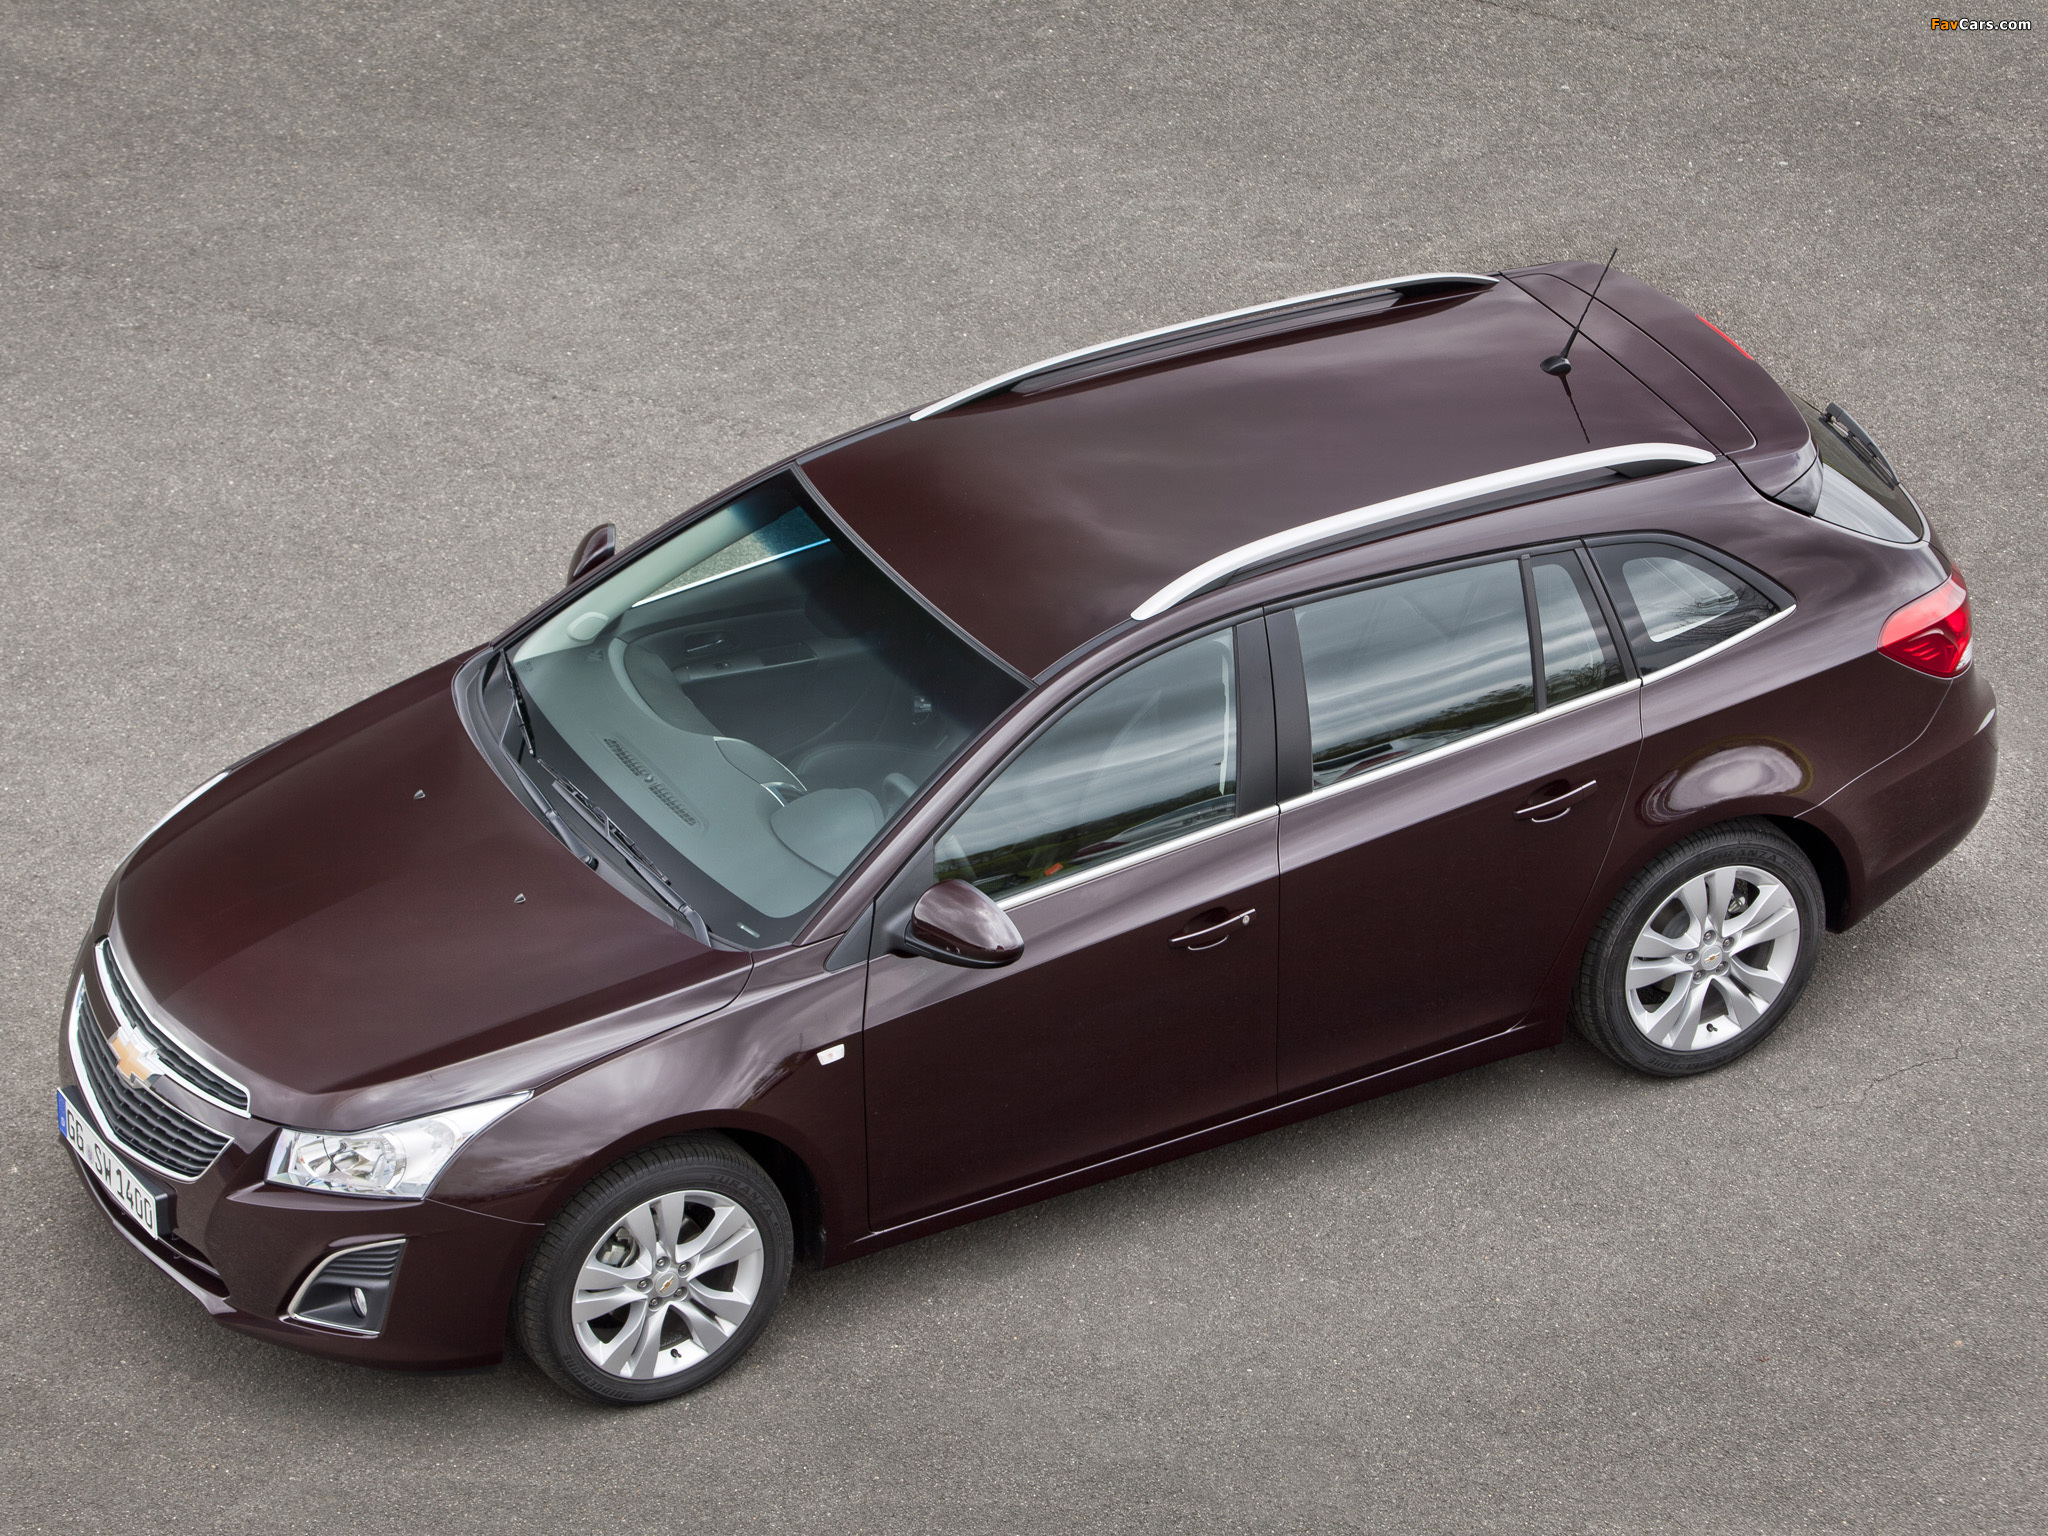 Chevrolet Cruze Station Wagon (J300) 2012 pictures (2048 x 1536)